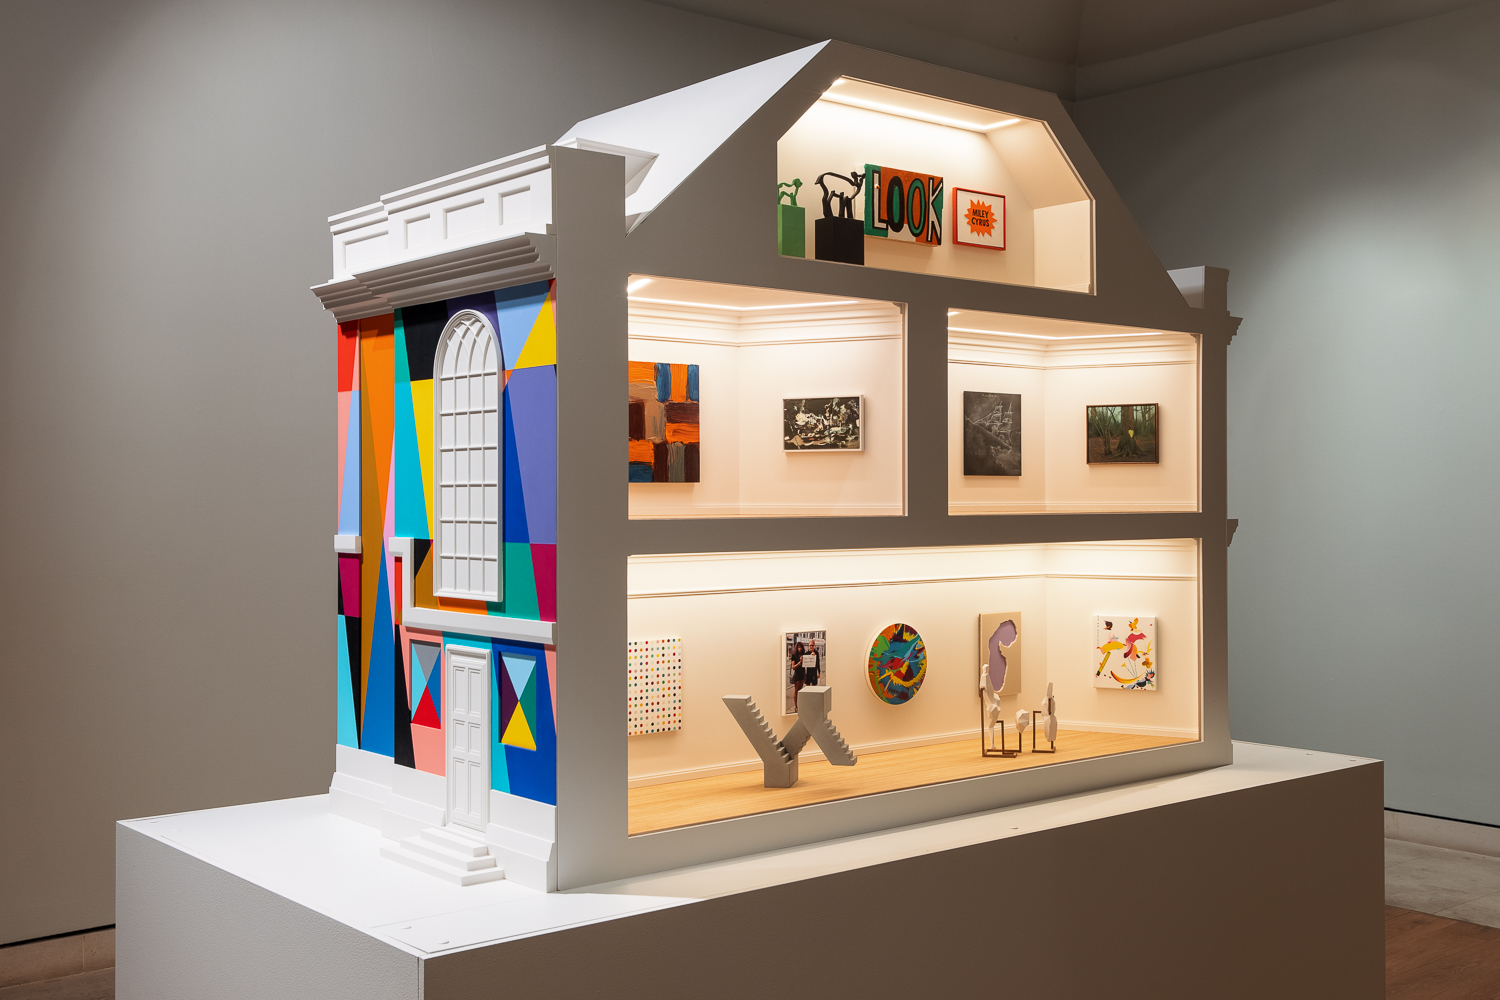 A large dollhouse sized art gallery, designed to imitate the exterior of an 18th century townhouse. The left hand side is painted with a brightly coloured geometric mural. The right side shows a cross section of four rooms (one in the attic, two on the first floor, and one on the ground floor), each filled with works of modern art.